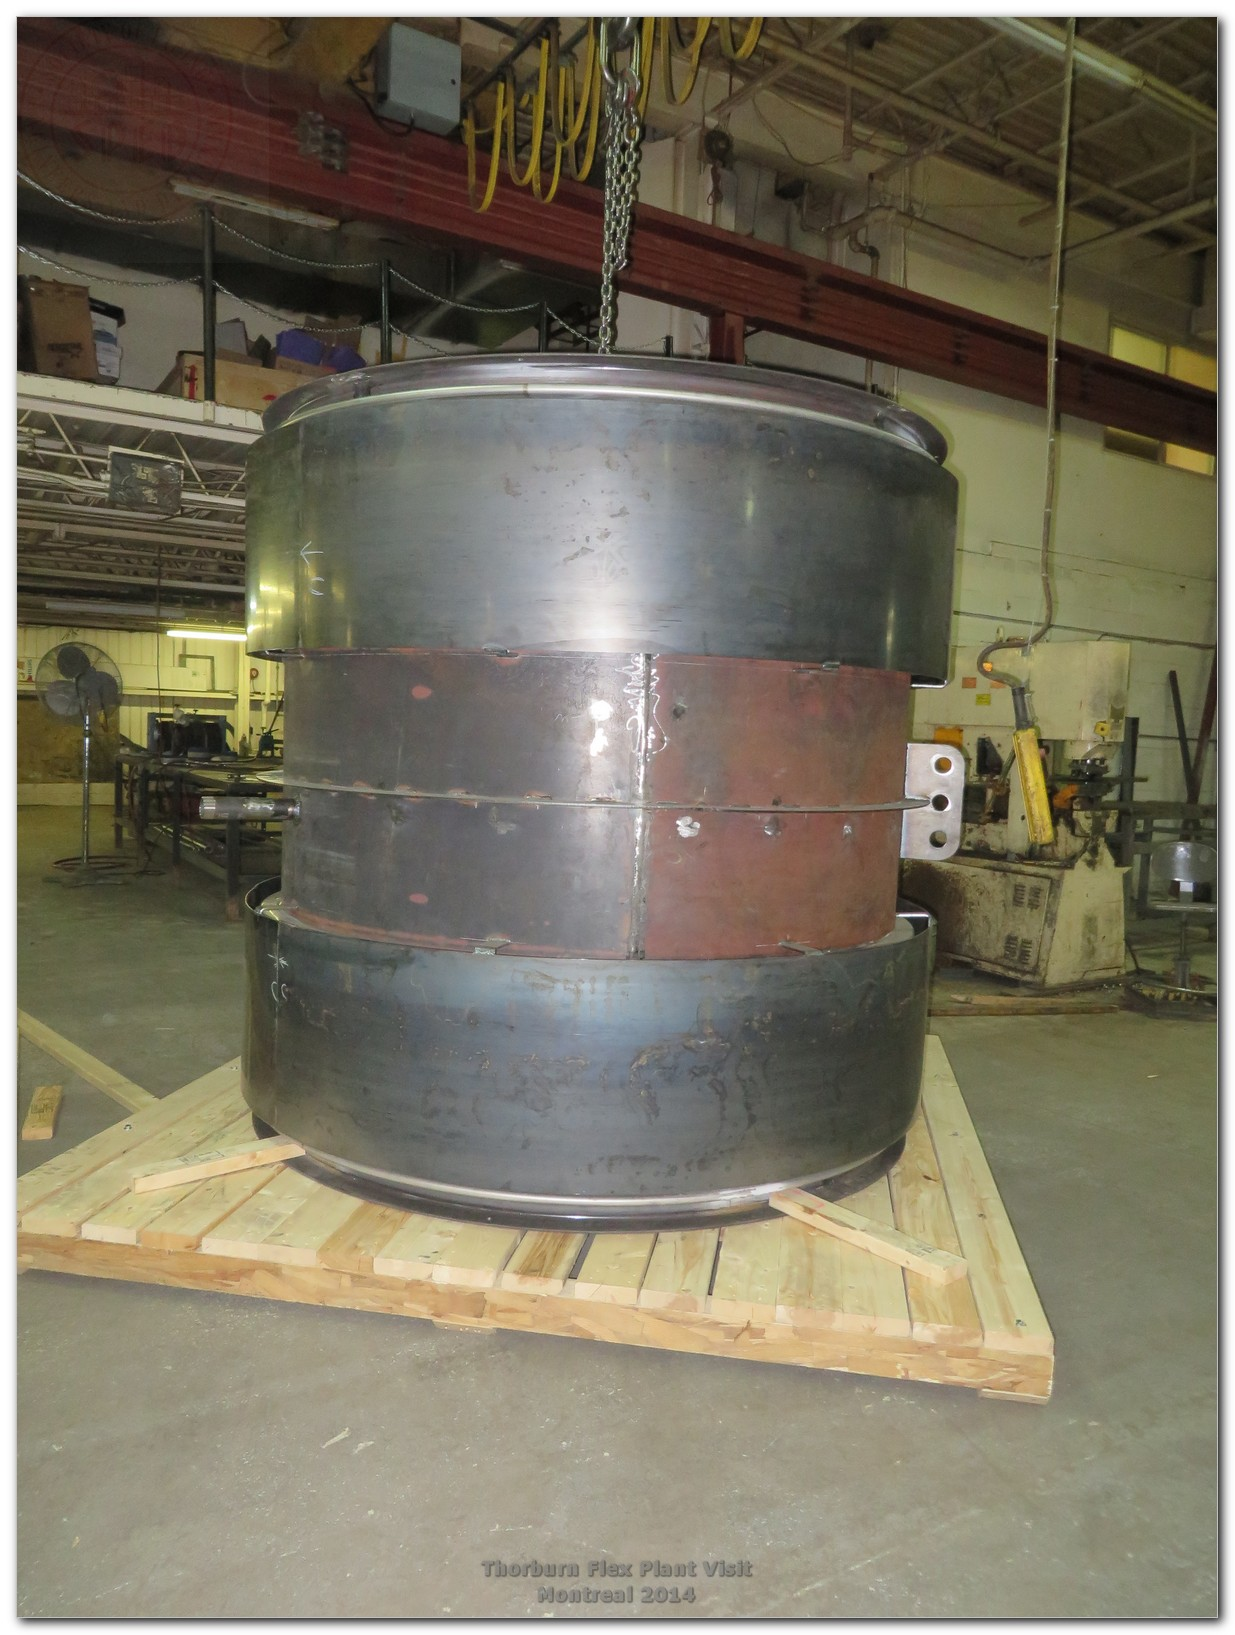 Universal metallic bellows expansion joint with corrosion resistant steel (Corten) spool pipe and covers installed over two bellows